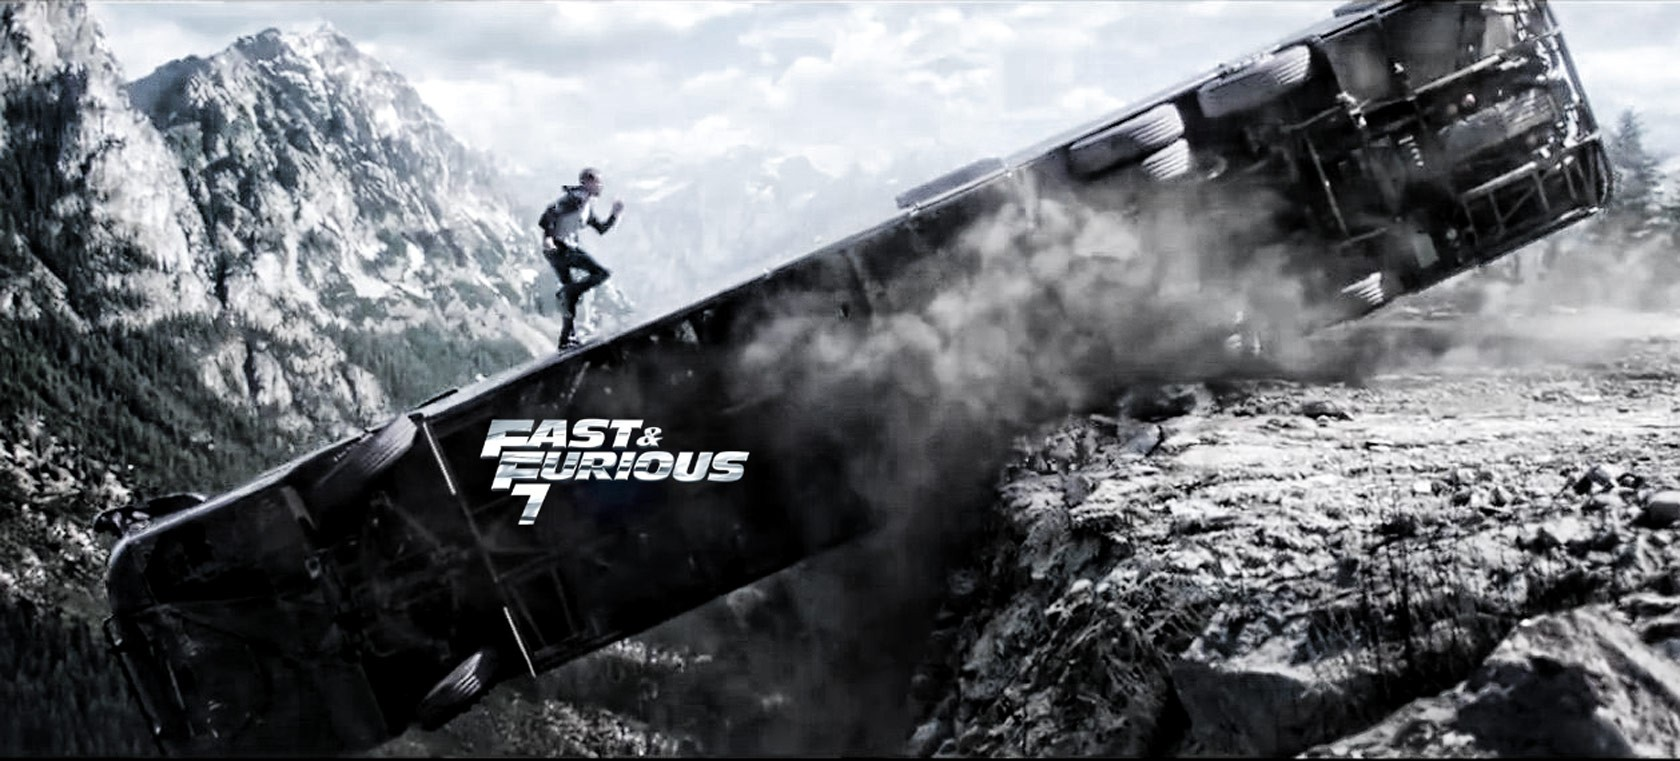 Fast And The Furious 7 Wallpaper: Fast And Furios 7 HD Wallpapers